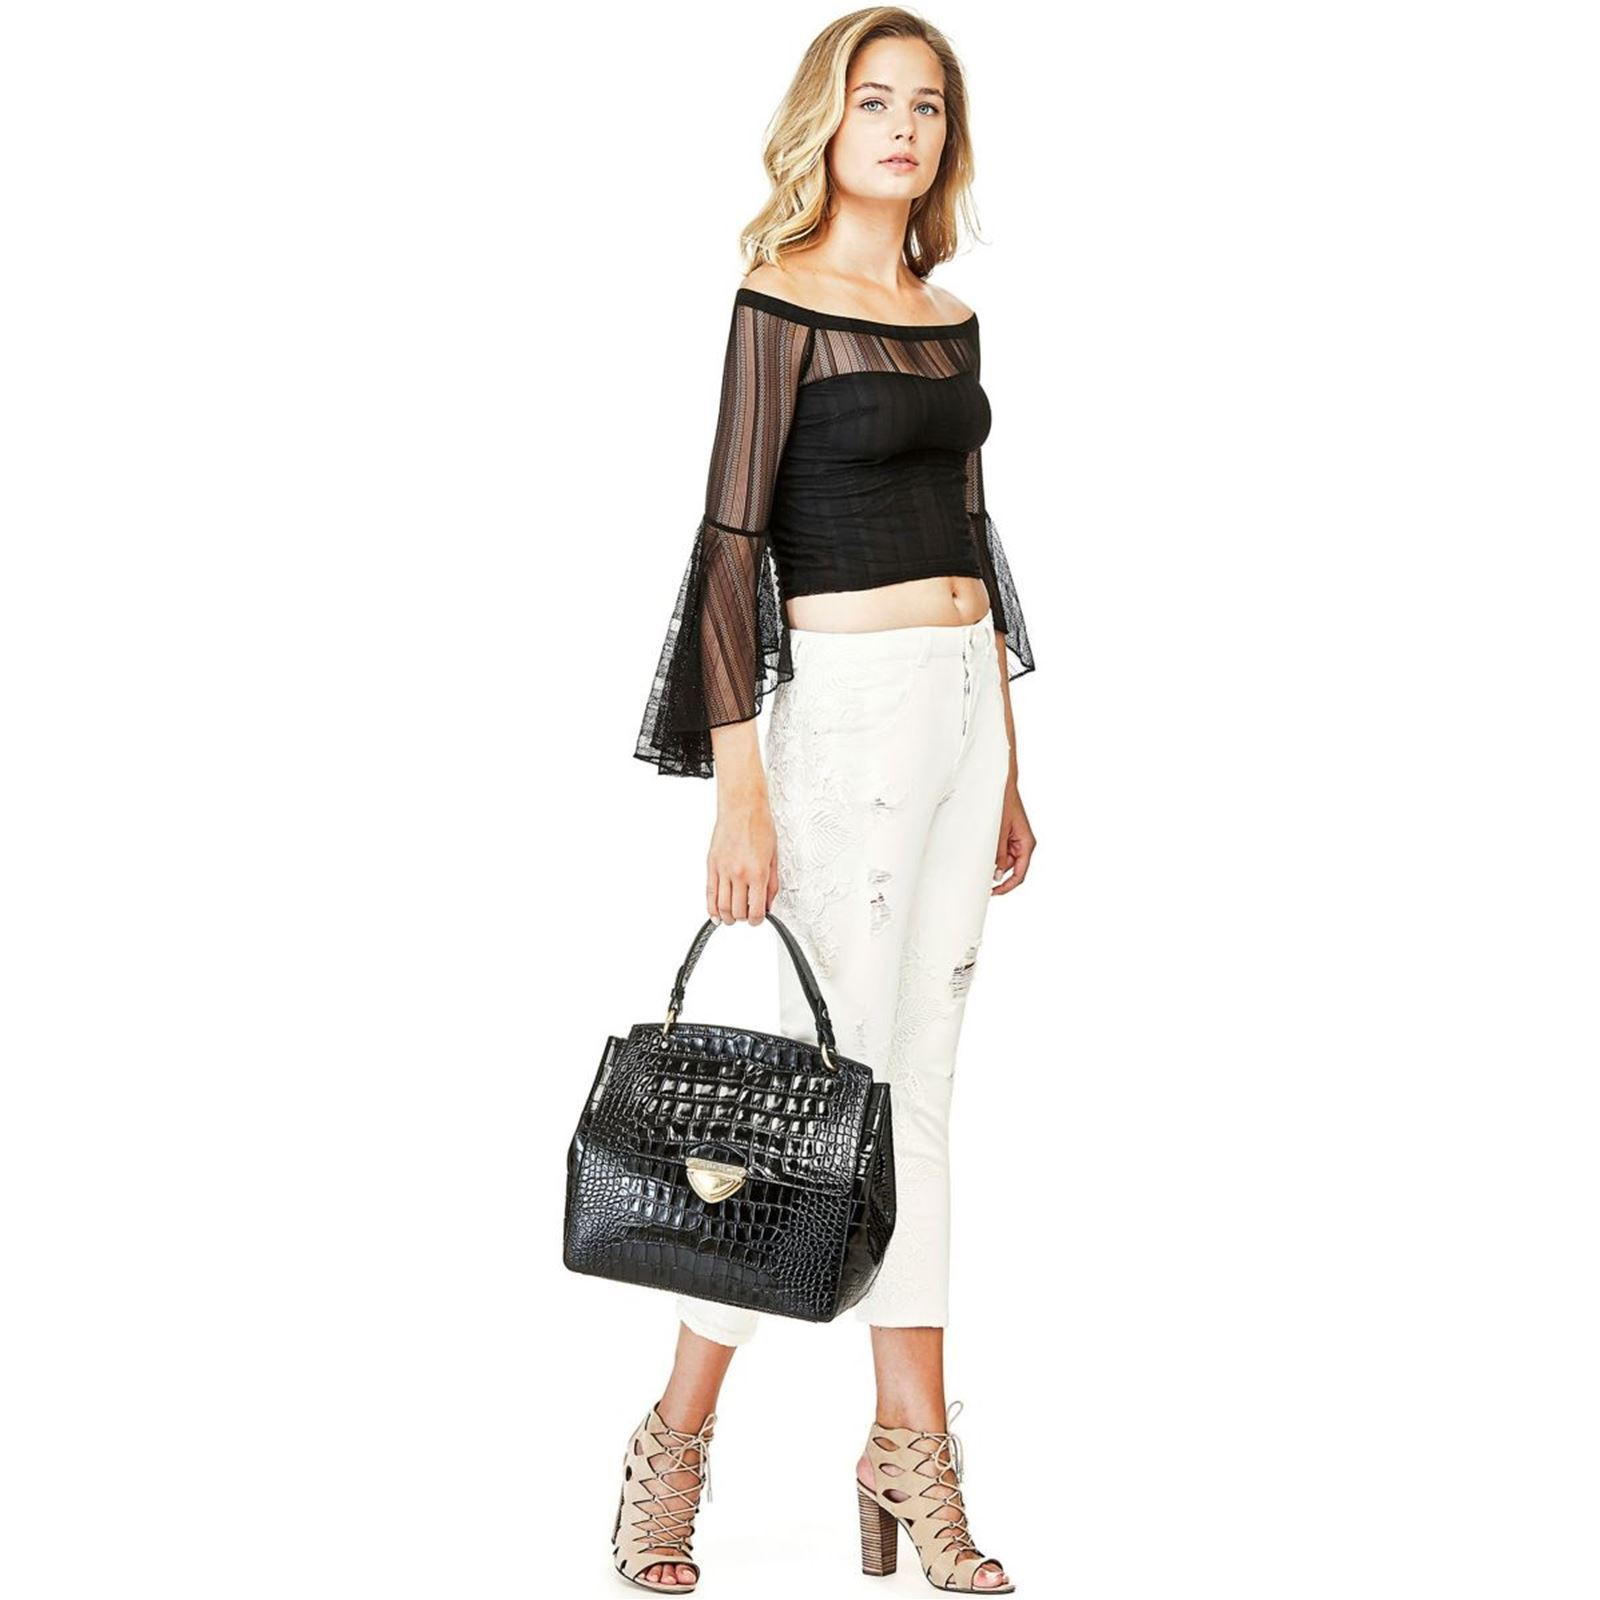 Guess Mandy Sac Cuir NoirBrandalley Main À En 1clJTFK3